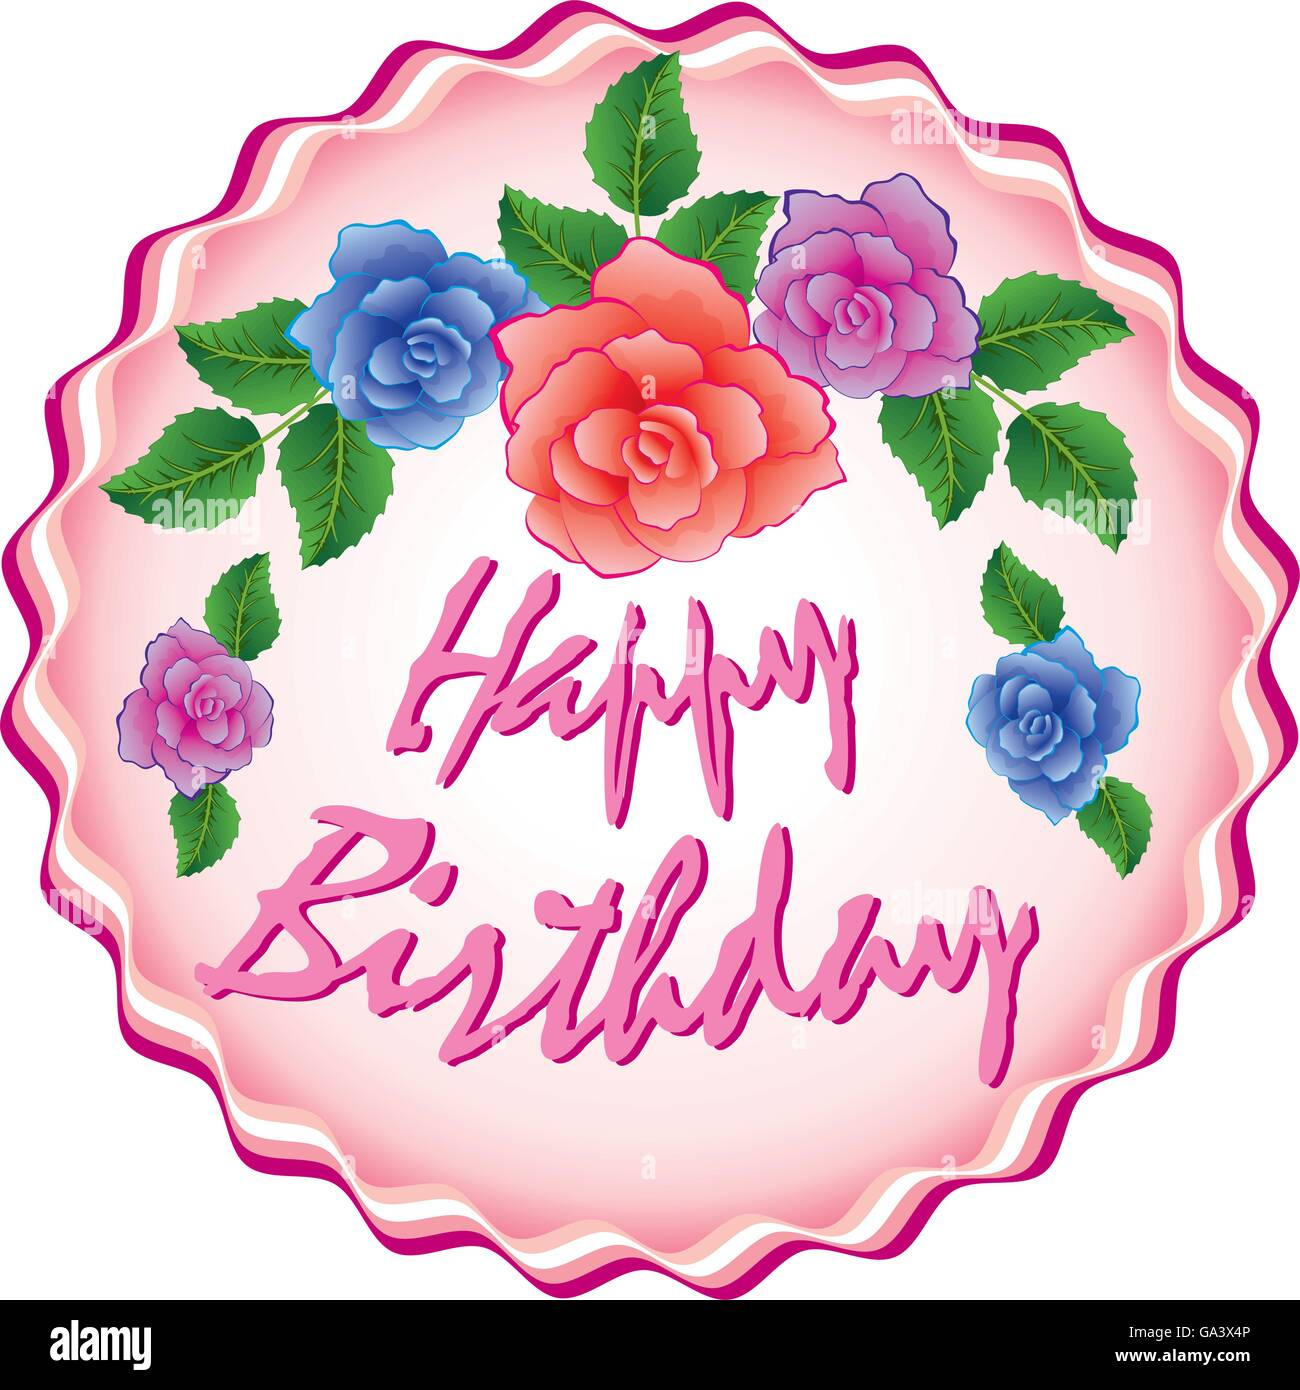 Vector Birthday Cake With Roses Stock Vector Art Illustration